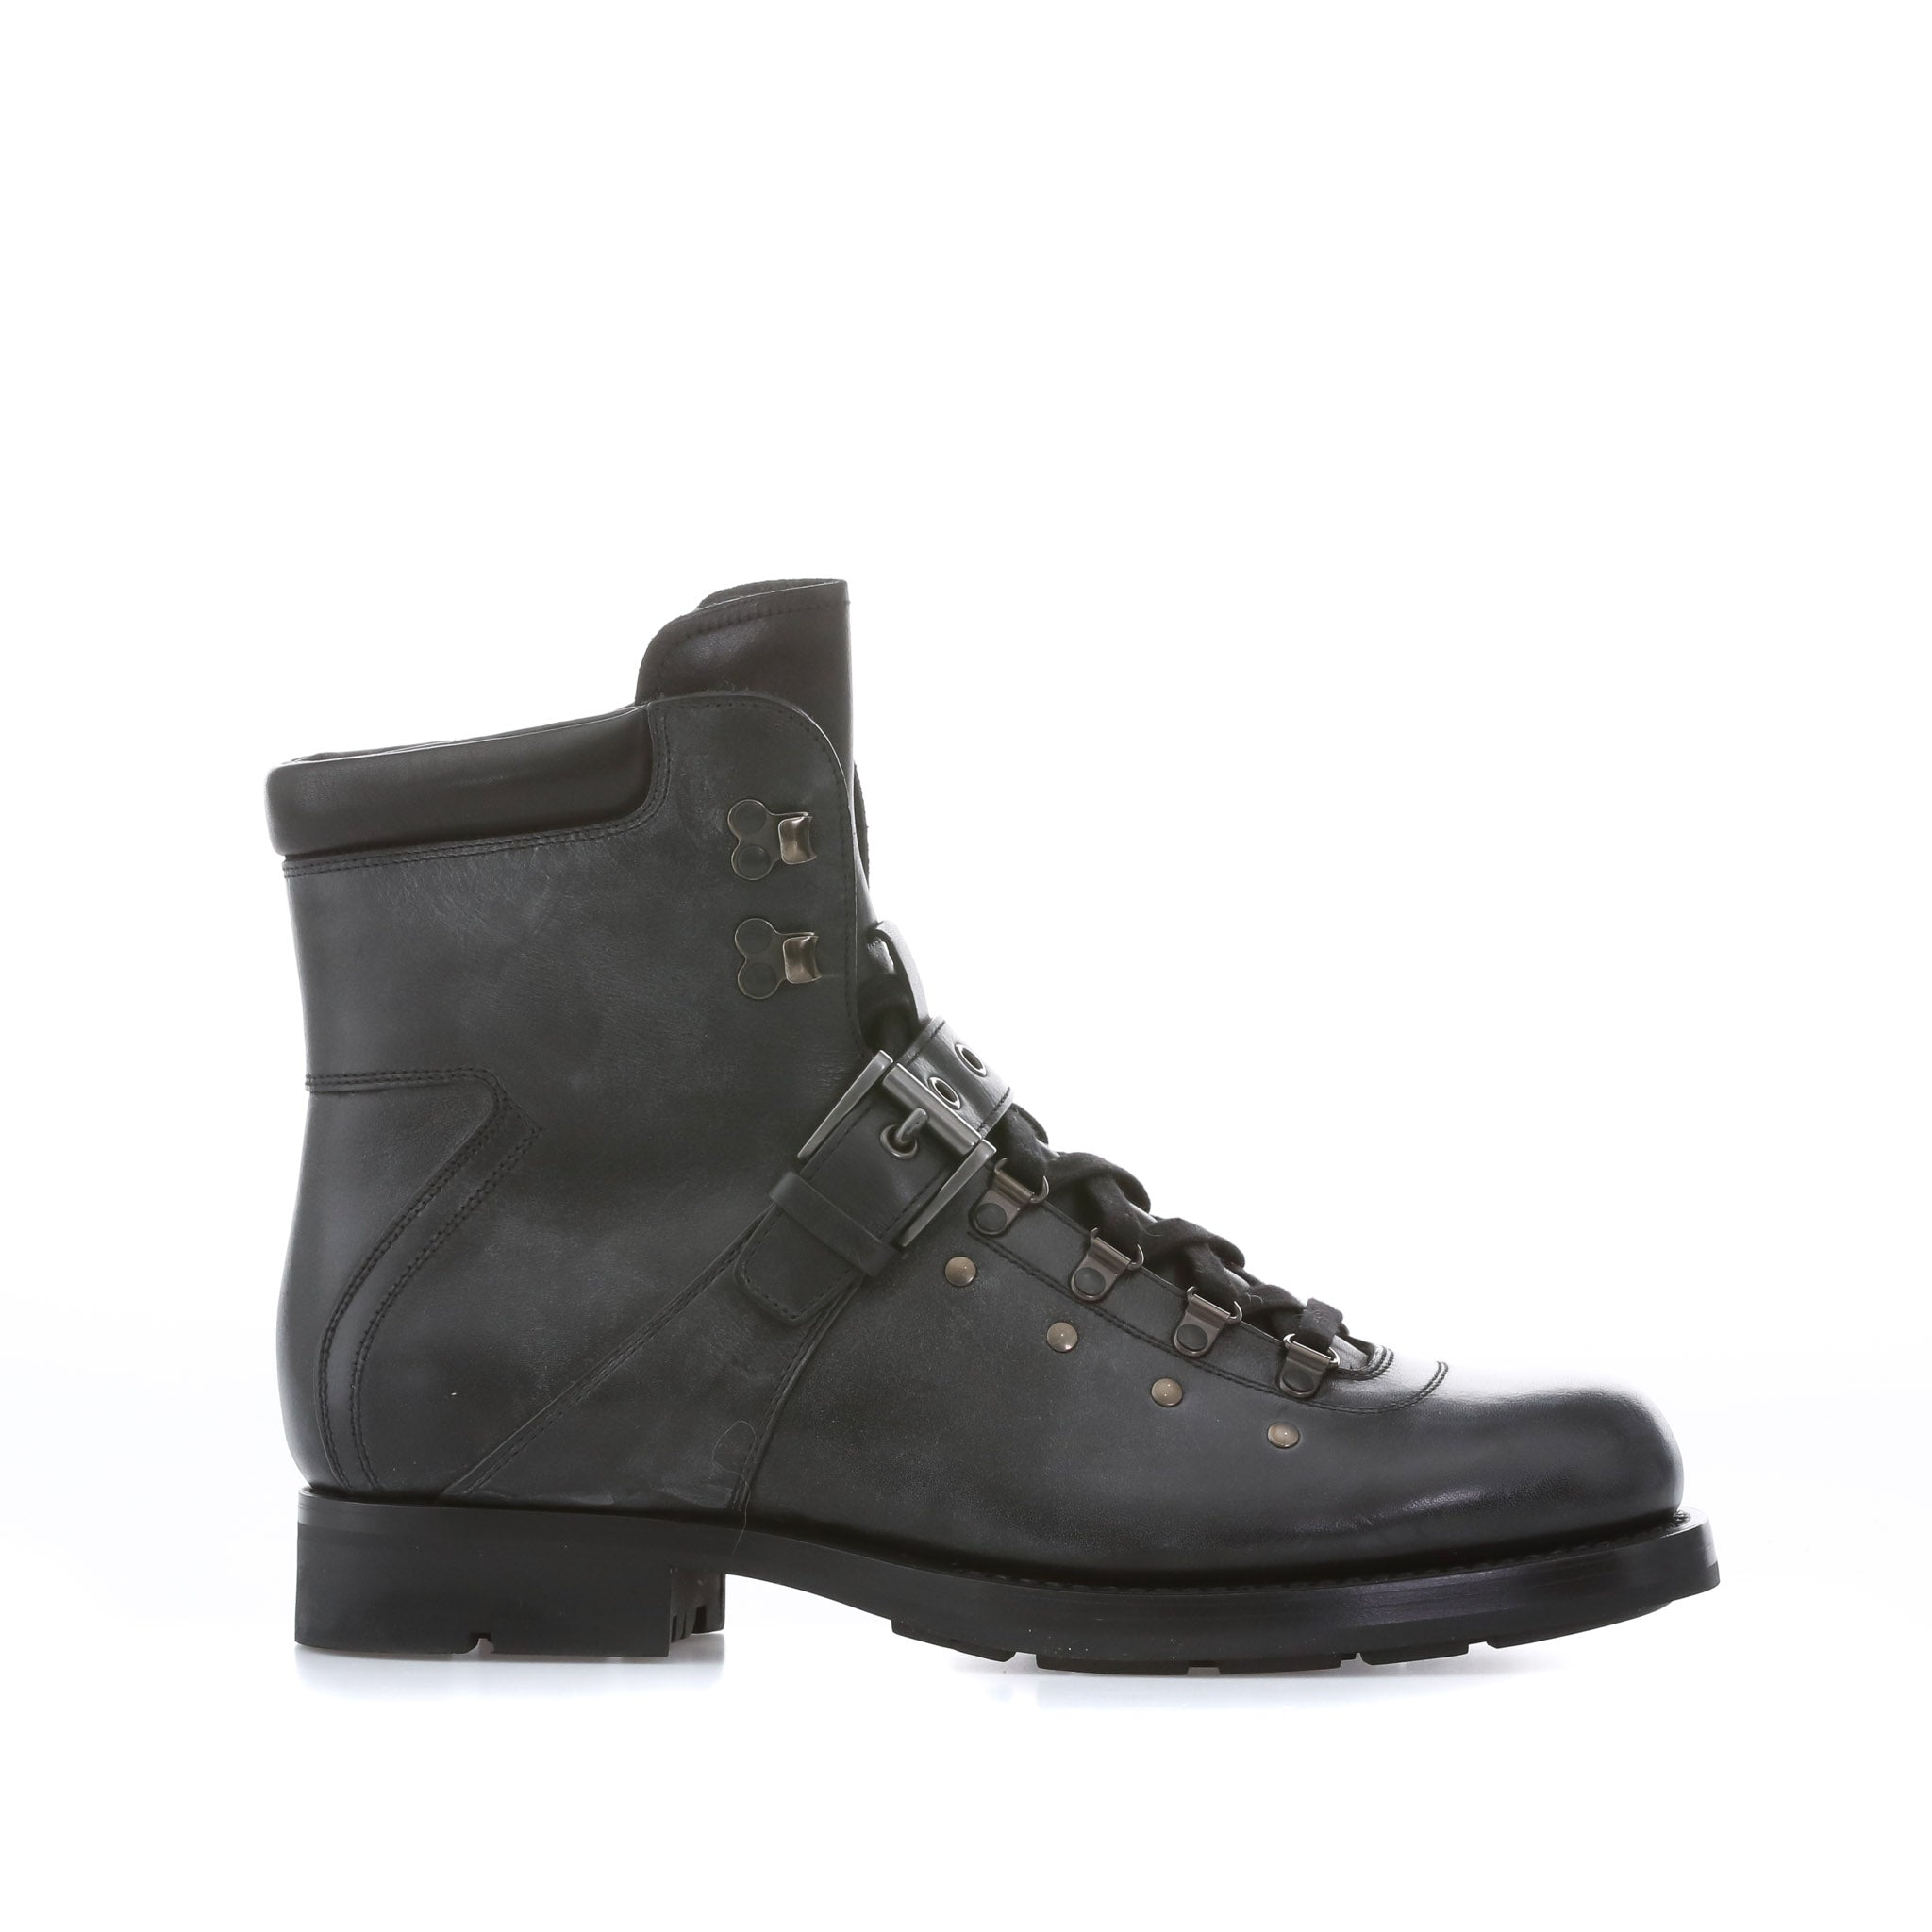 Prada Lace-Up Leather Boots